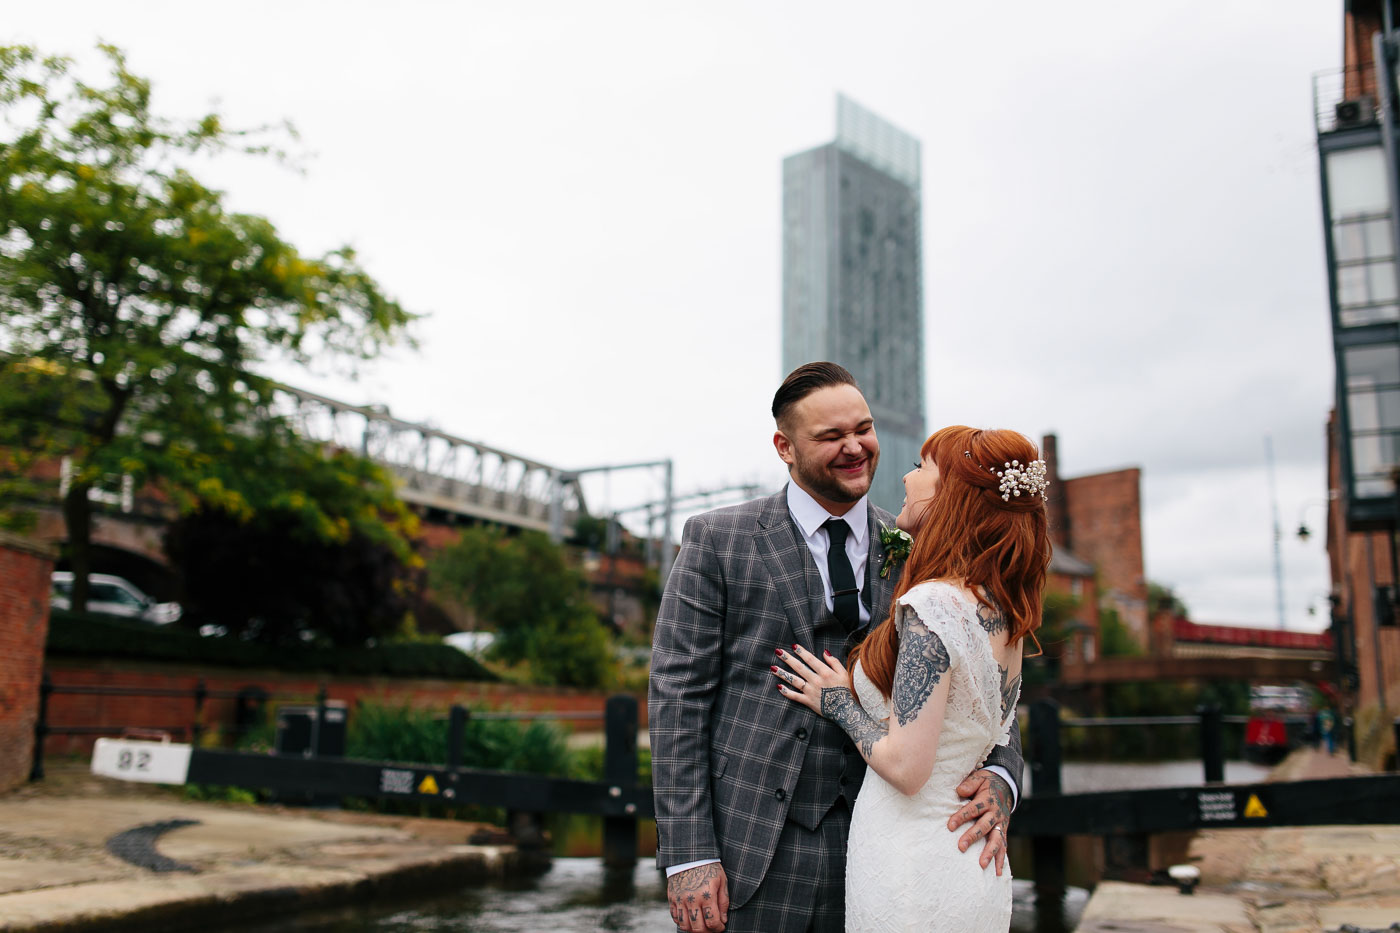 castlefield wedding photography with the hilton hotel in the distance